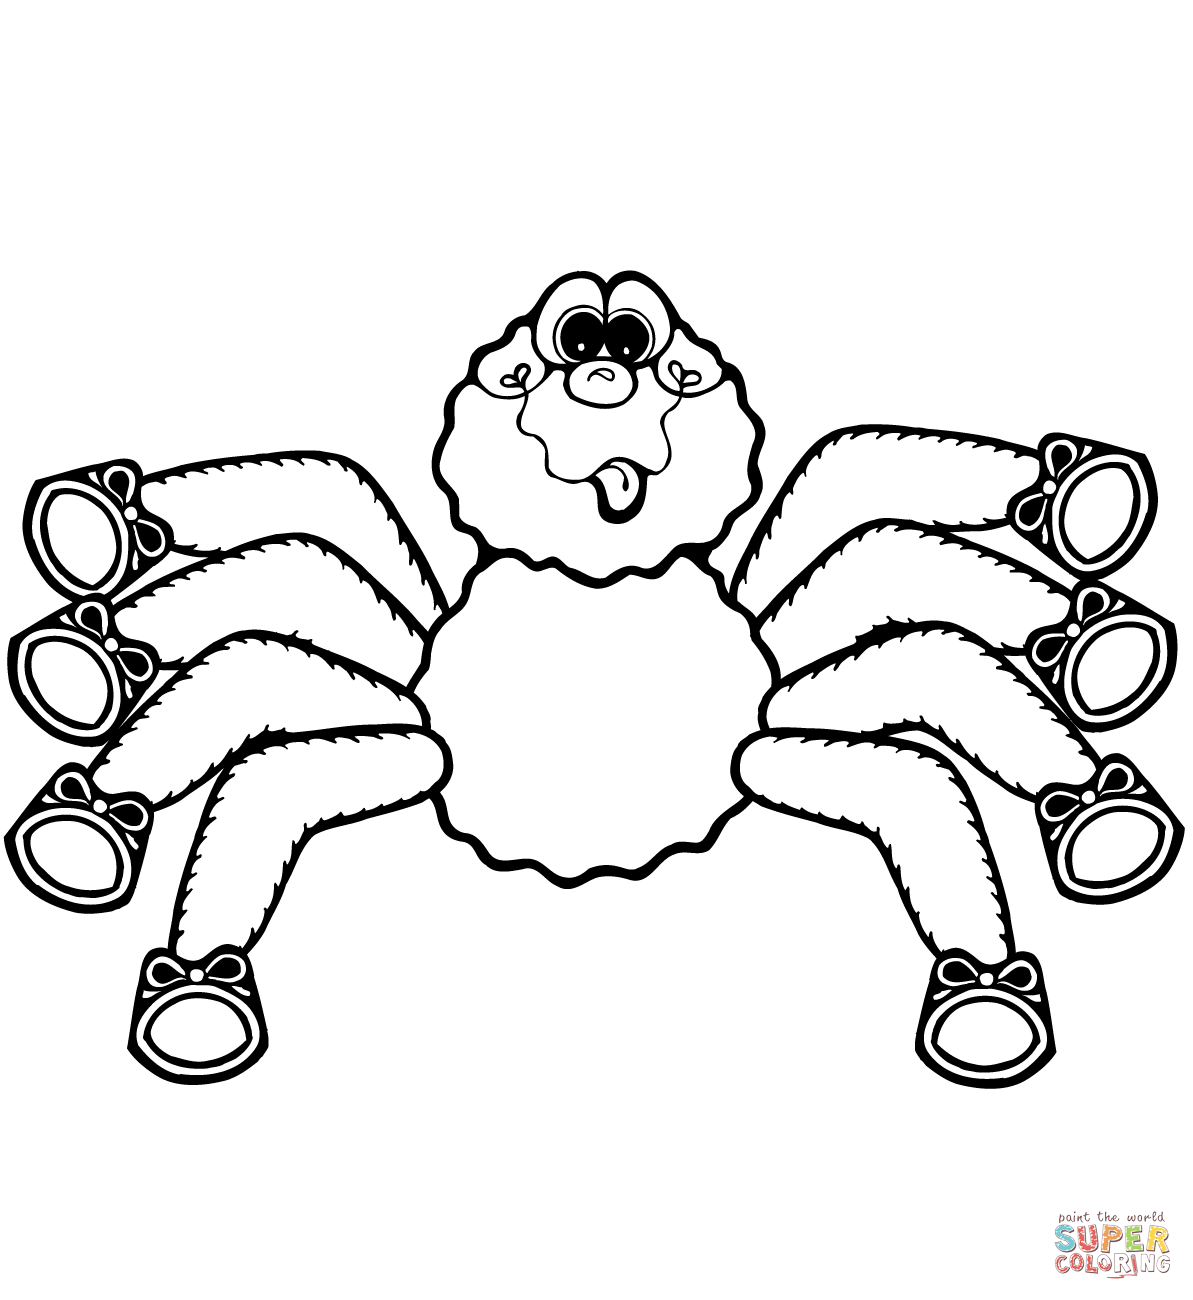 Cartoon Spiderman Drawing at GetDrawings.com | Free for personal use ...